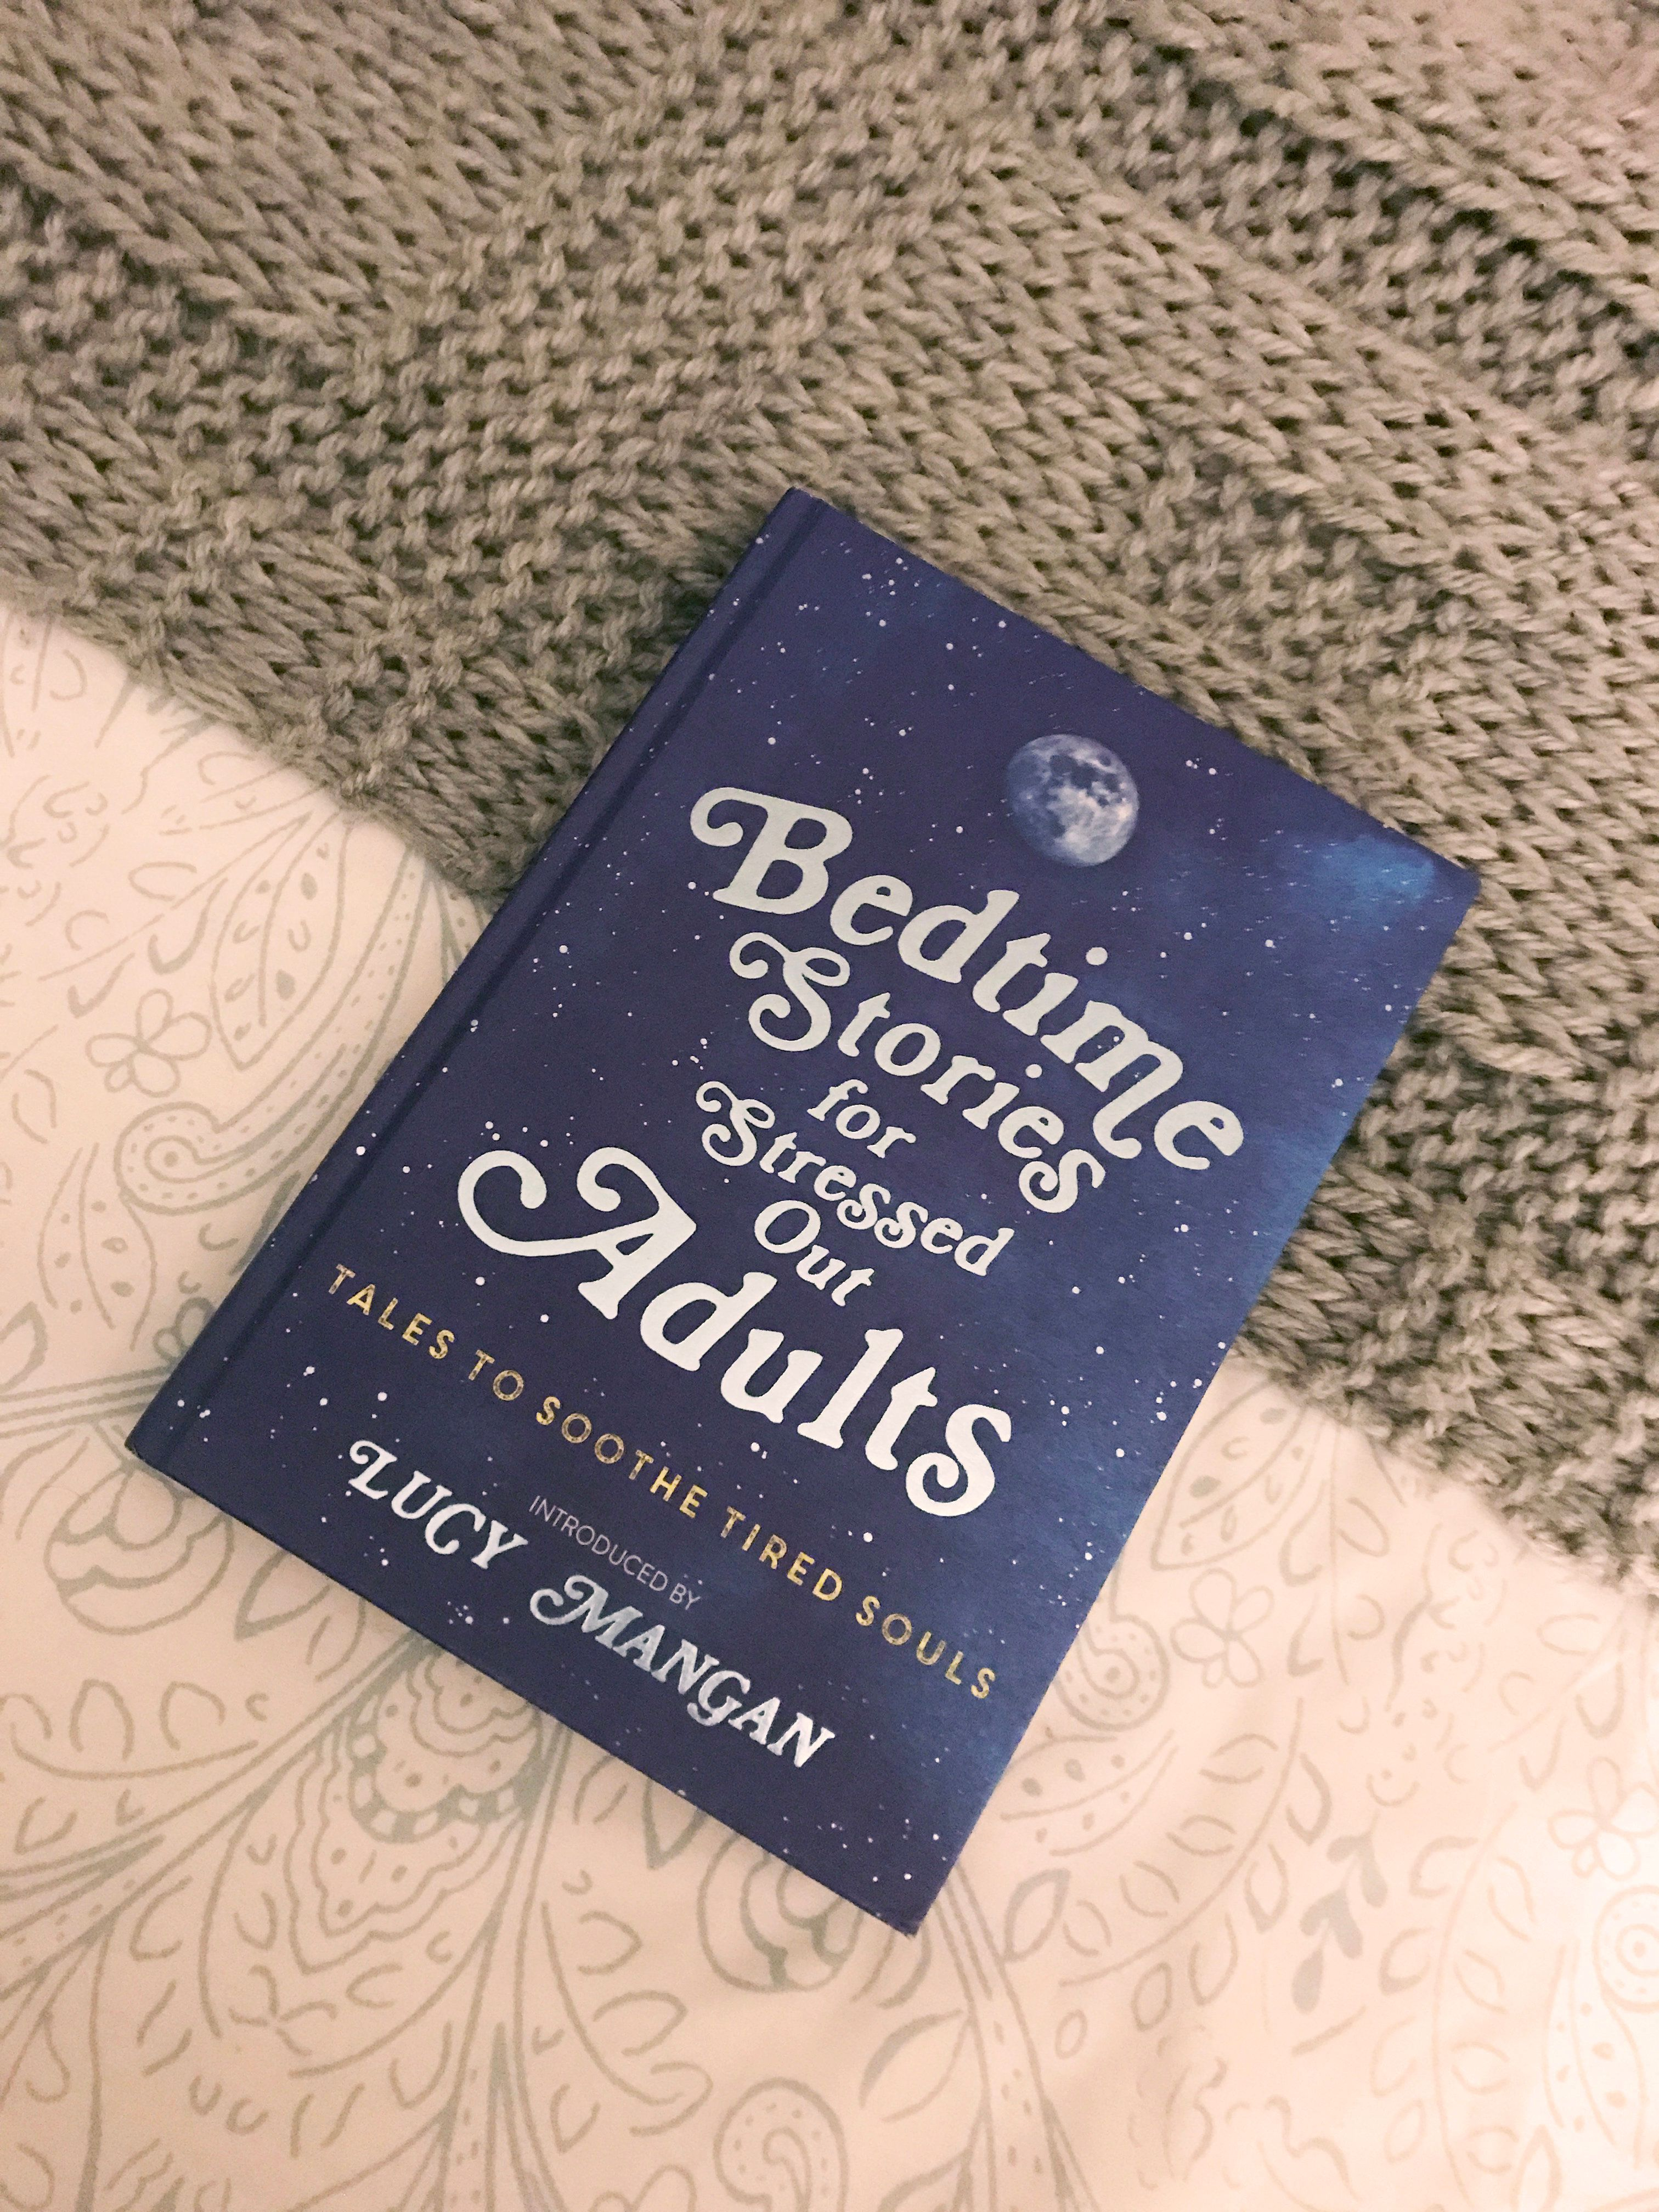 CALMING: Can A Bedtime Story For Stressed-Out Adults Help Me Get To